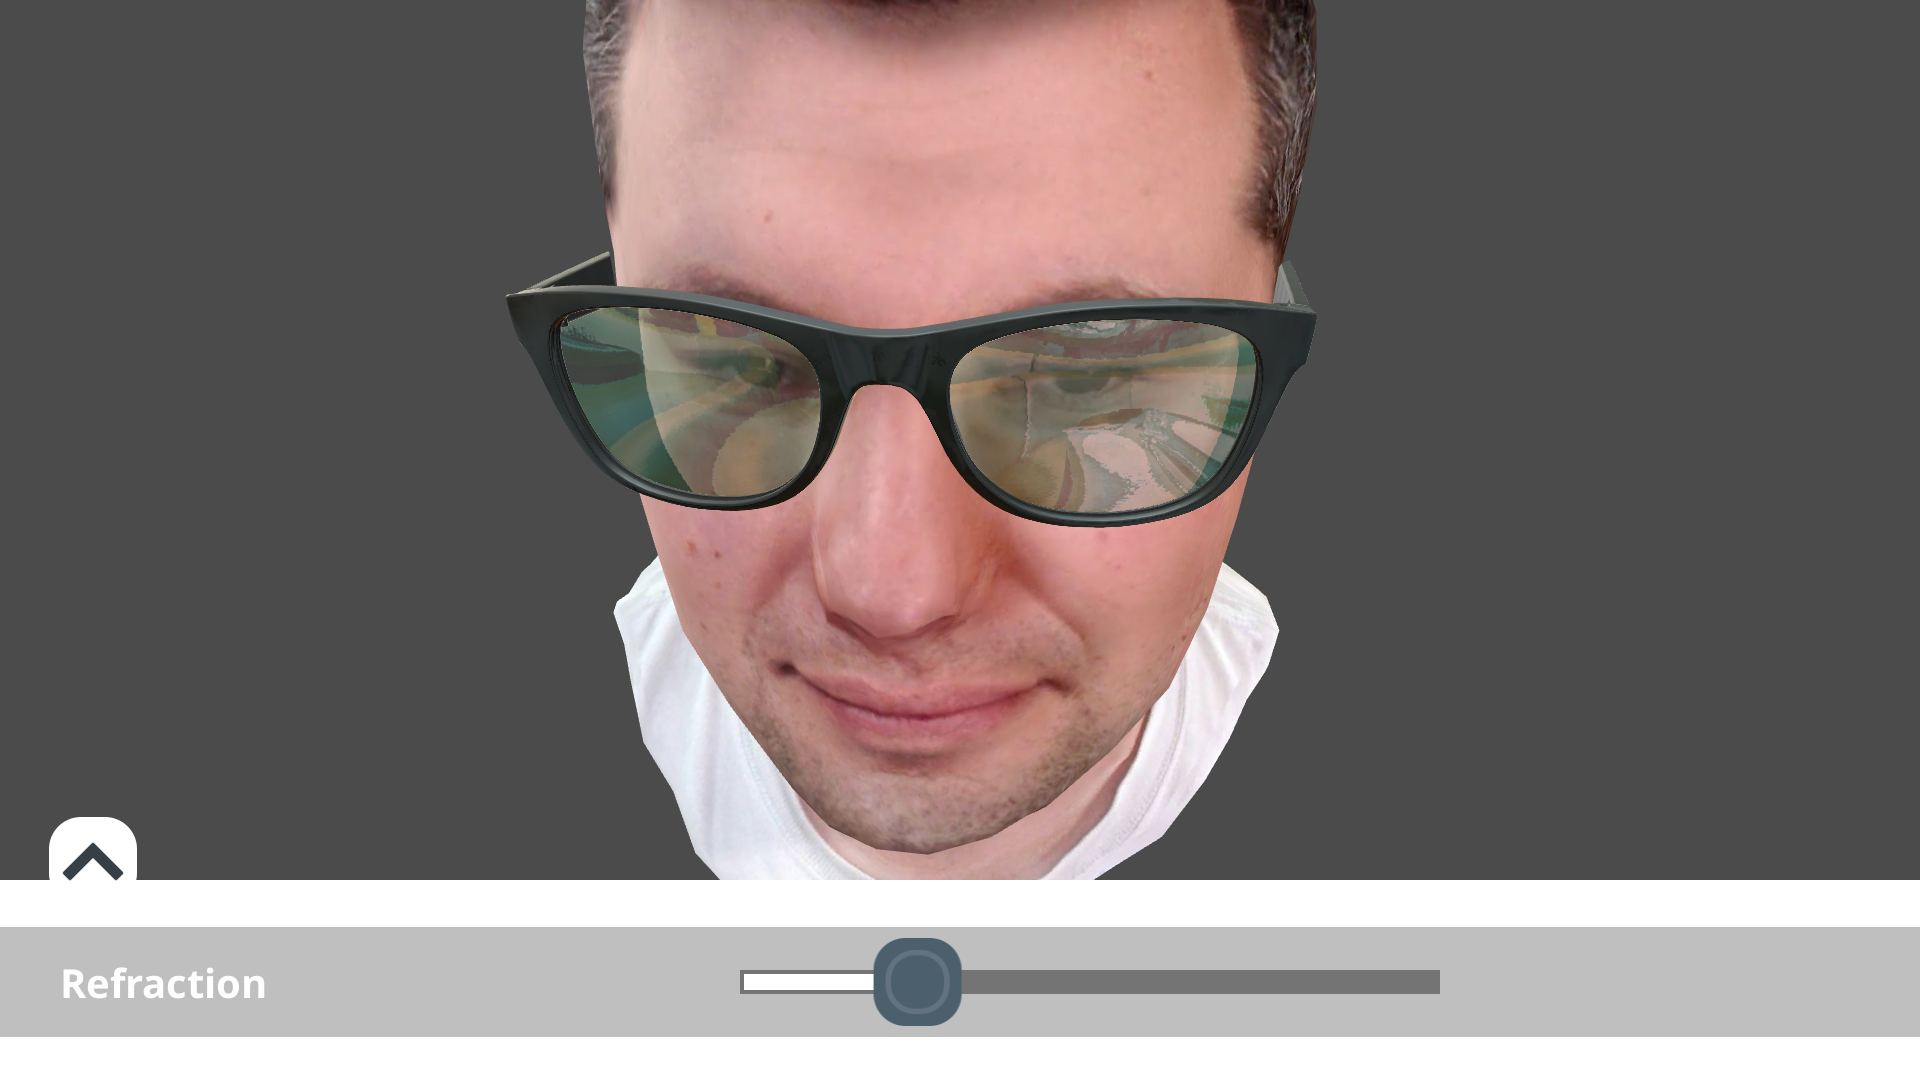 Shader glasses